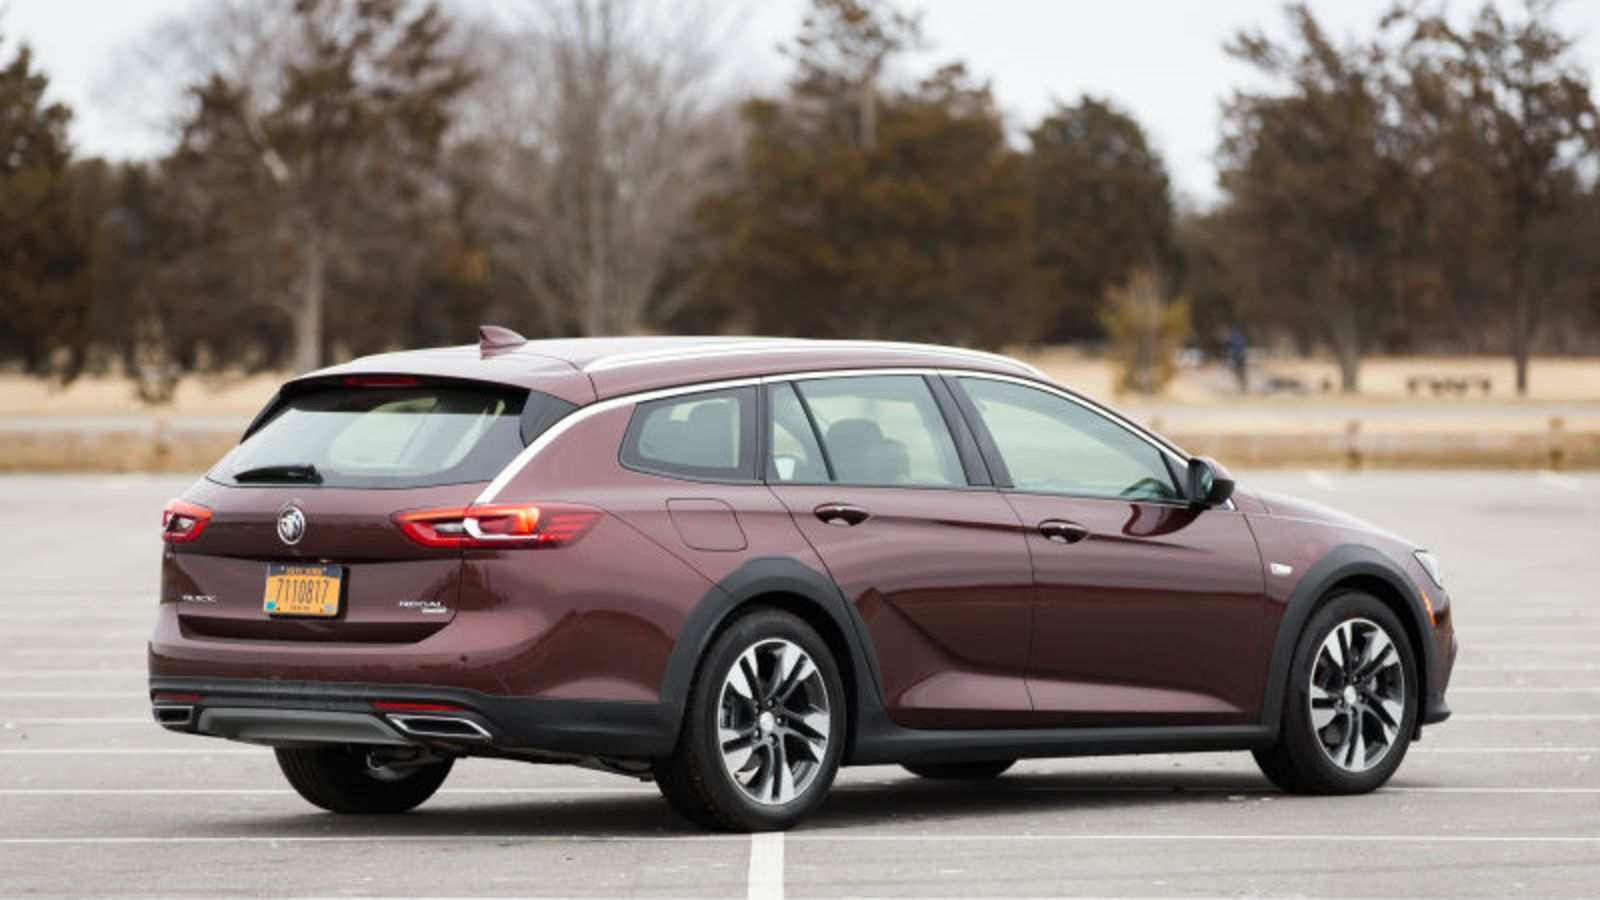 49 A Buick Wagon 2020 Concept And Review